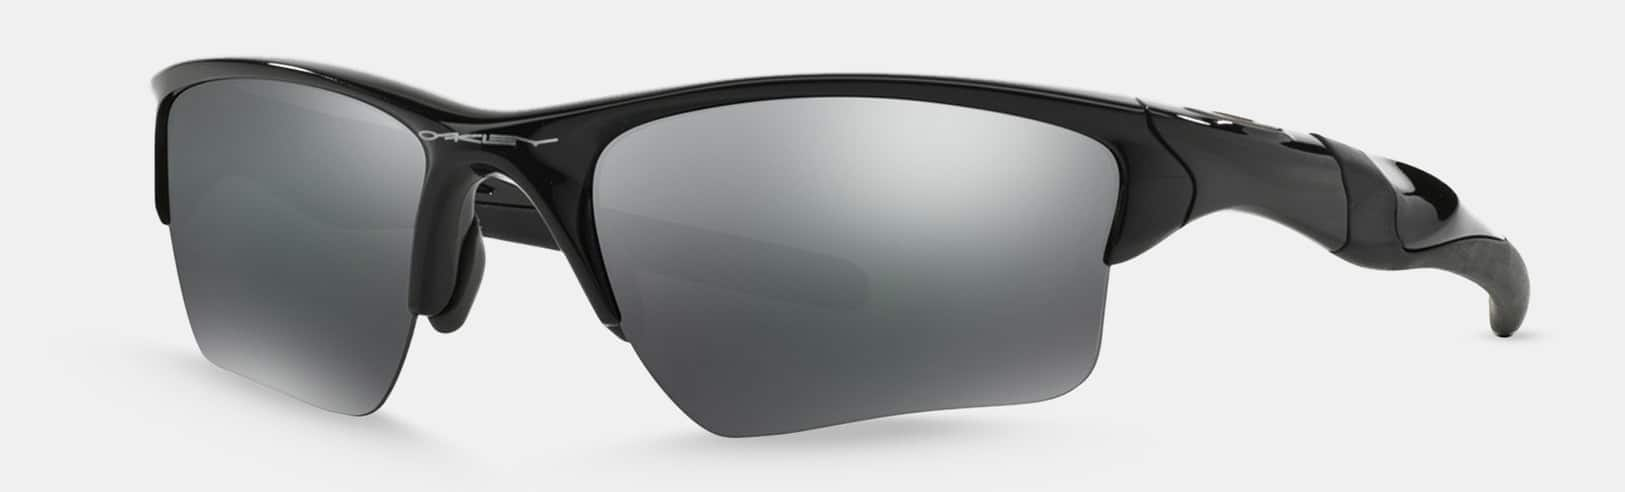 Oakley Half Jacket 2.0 XL Sunglasses $79.99